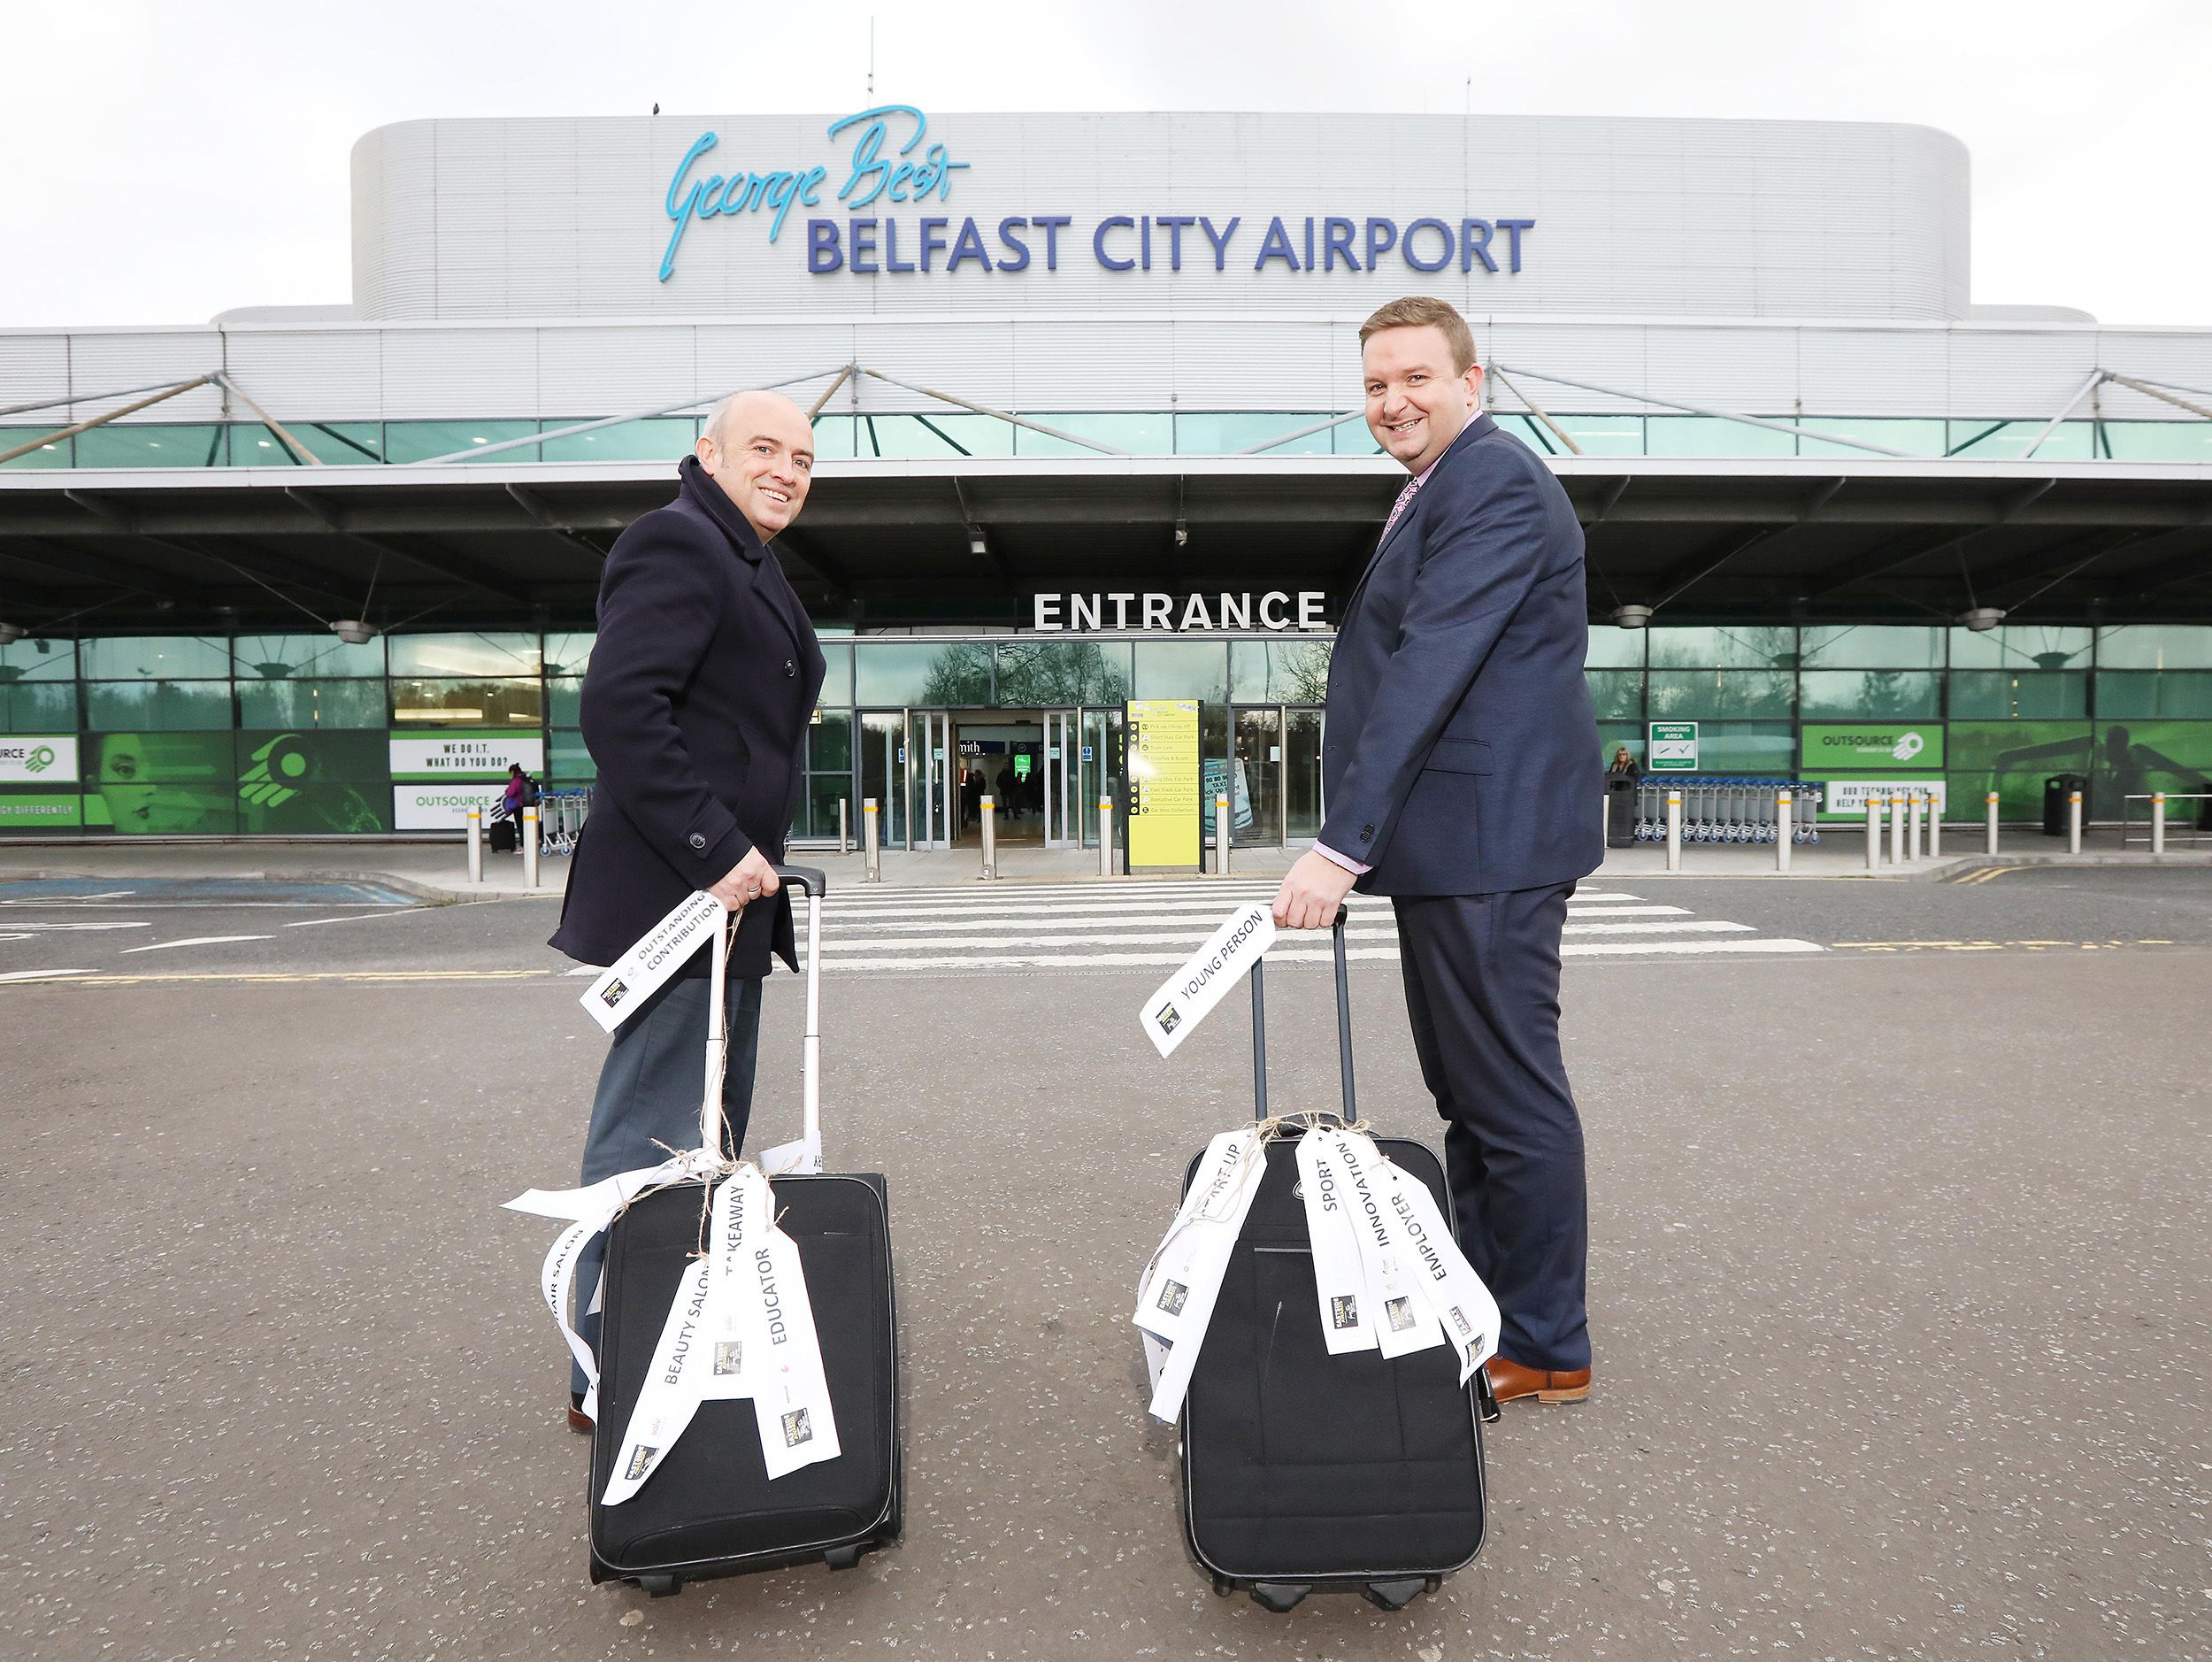 Belfast City Airport sponsors the Eastside Awards for the